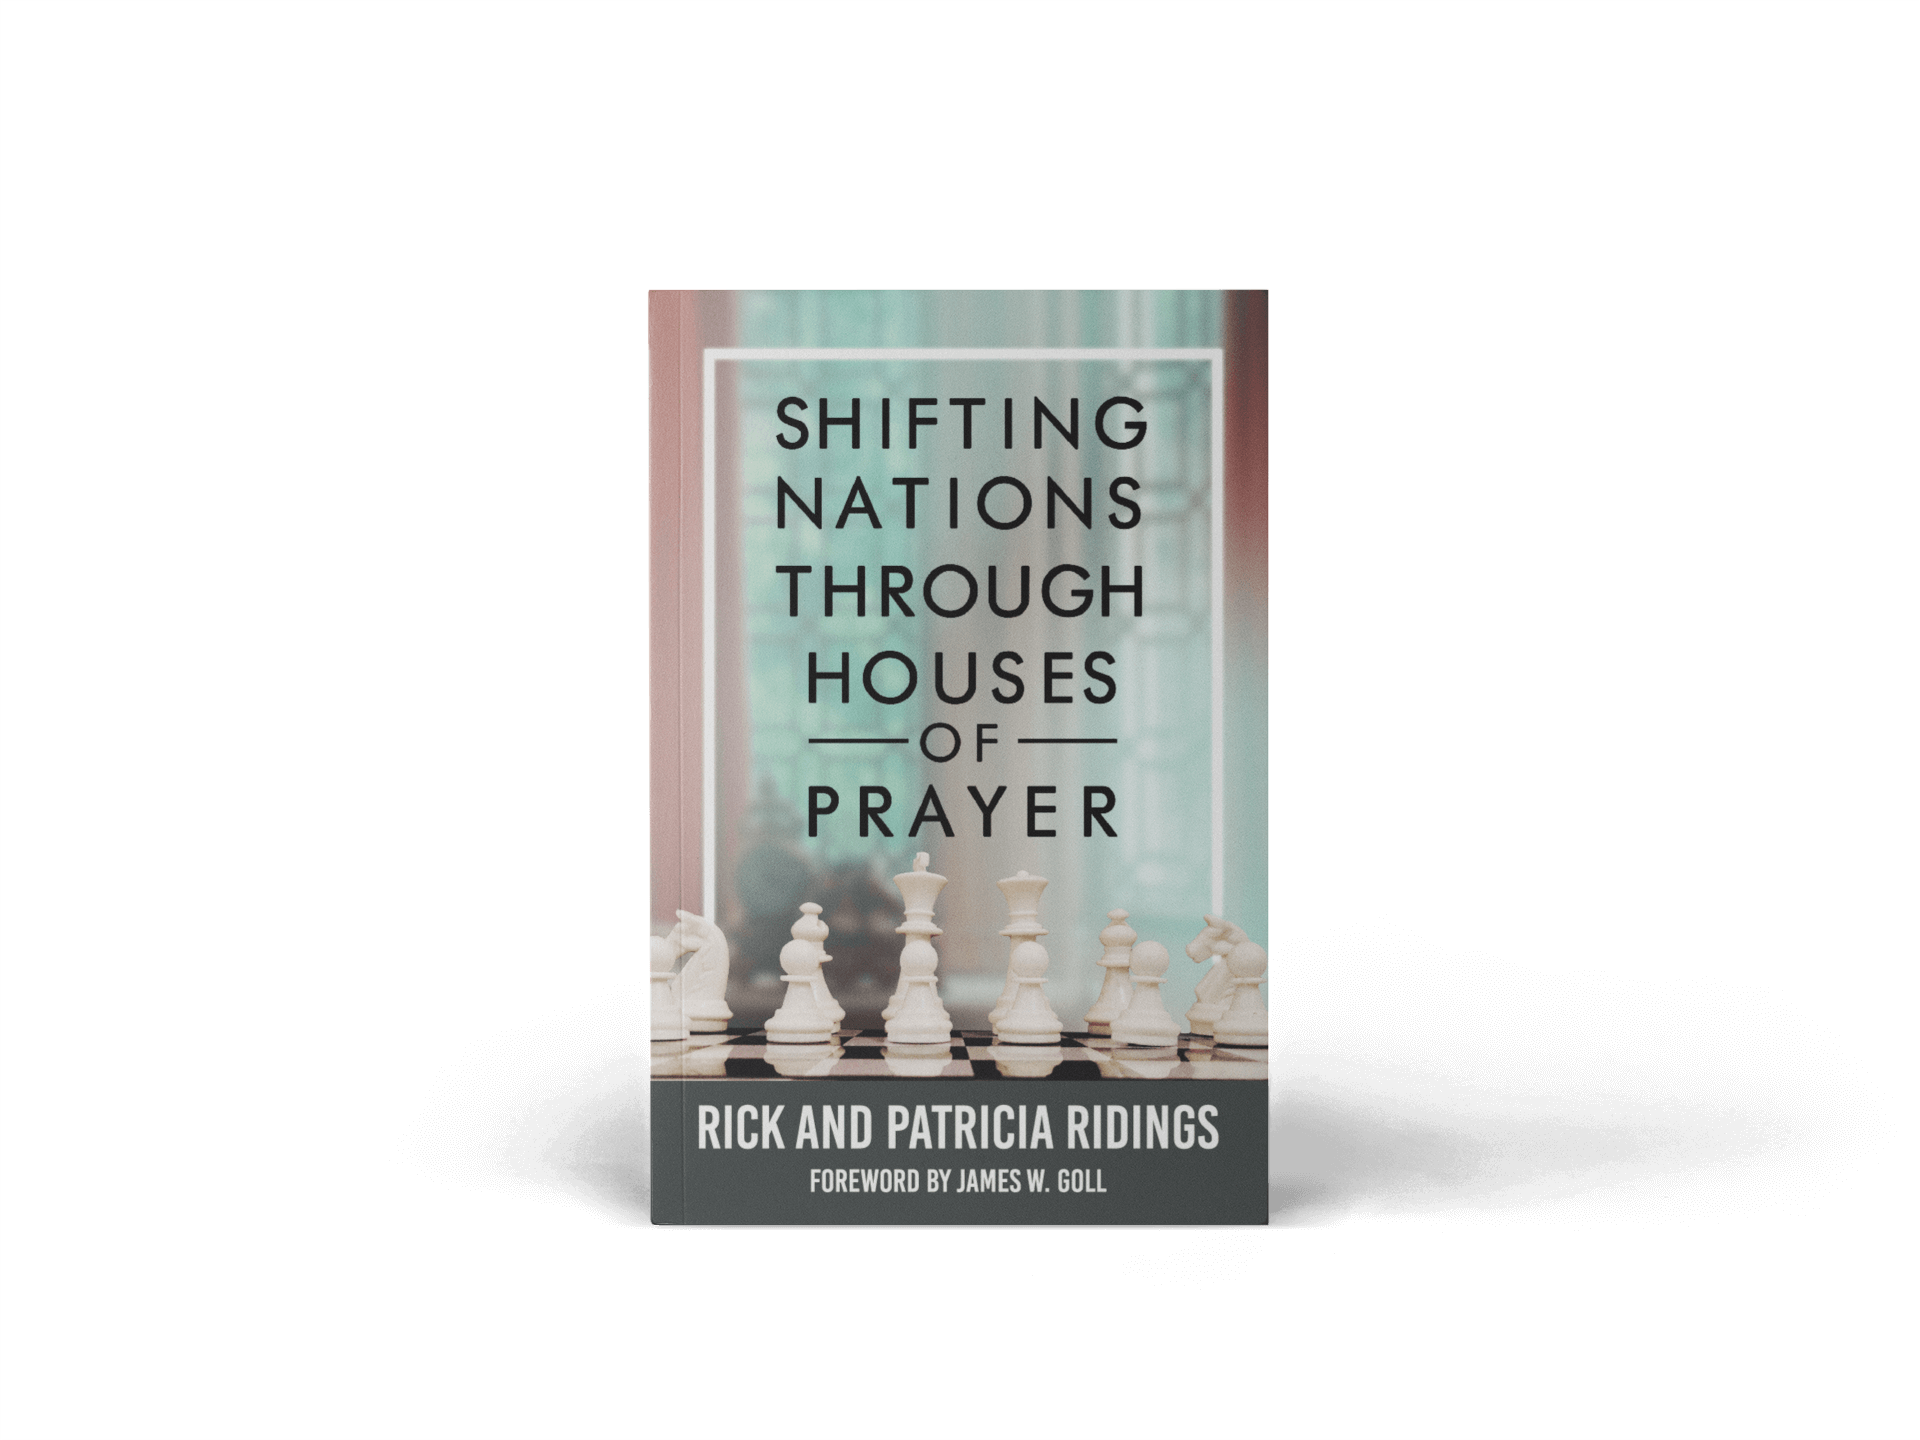 Succat Hallel | Shifting Nations Through Houses of Prayer | the new book by Rick and Patricia Ridings